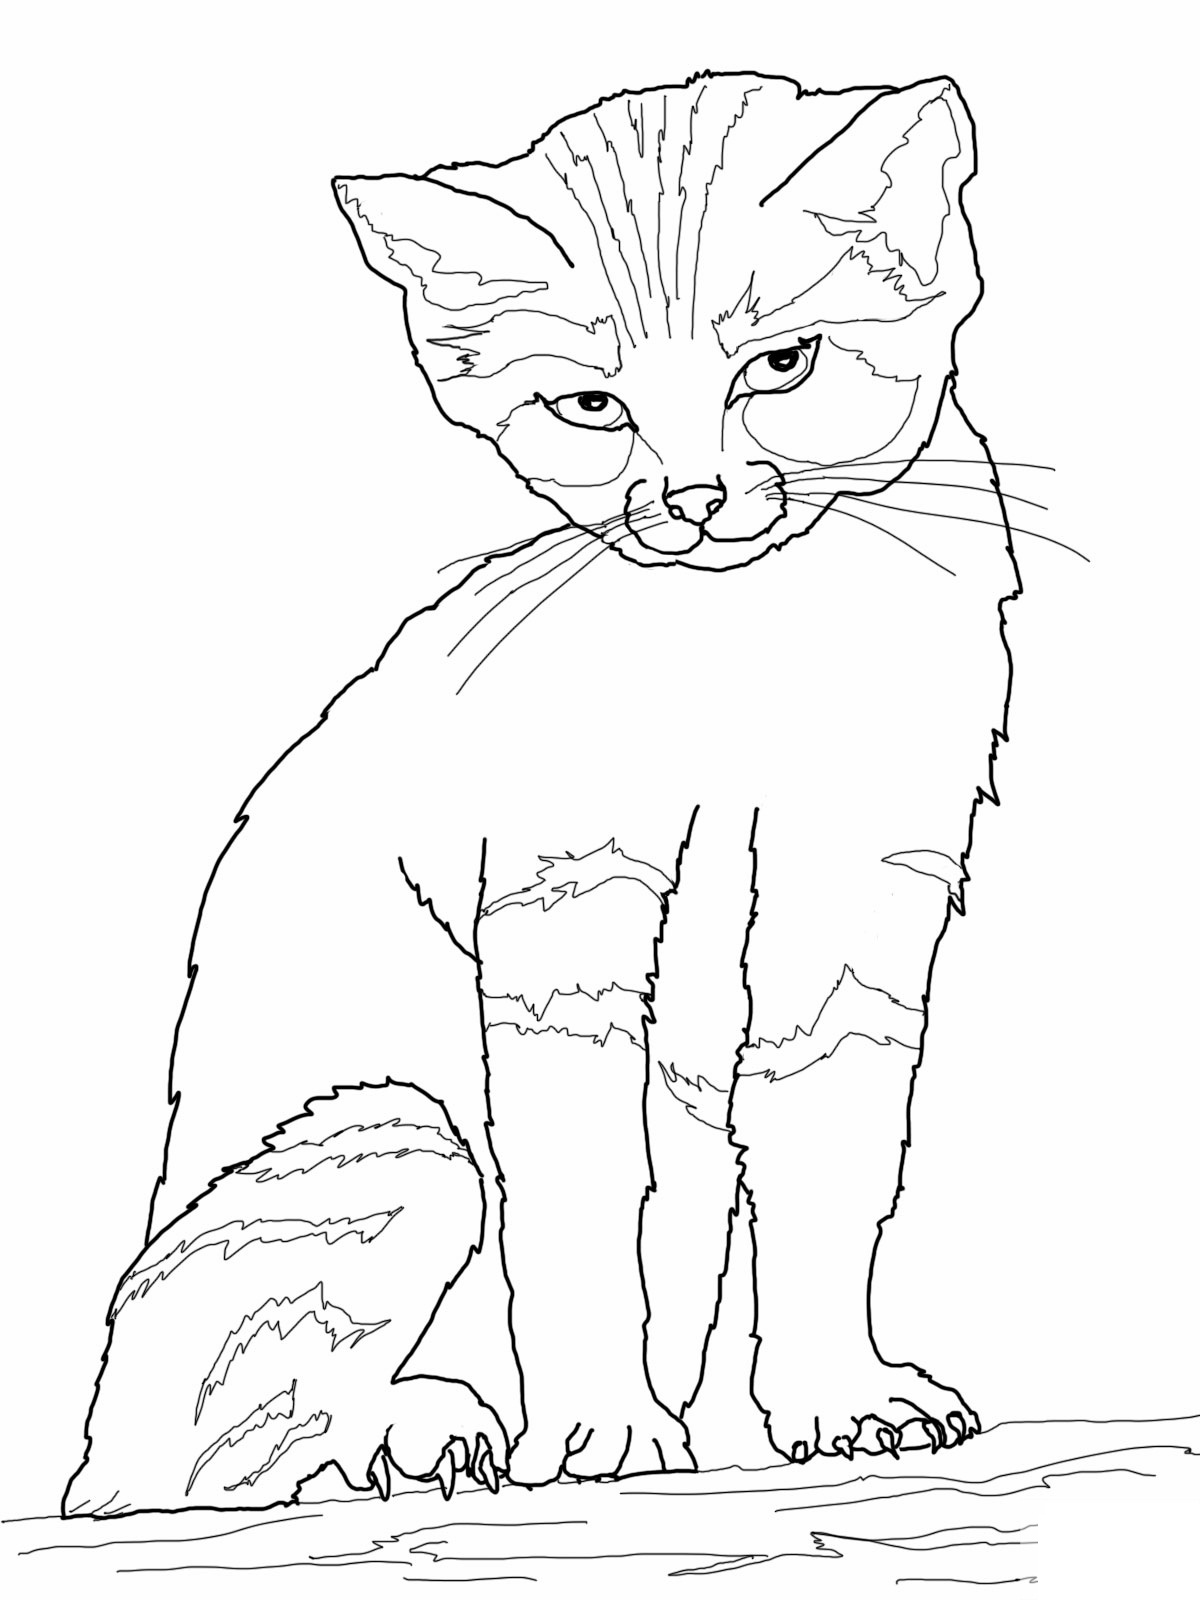 Cat coloring pages for kids printable